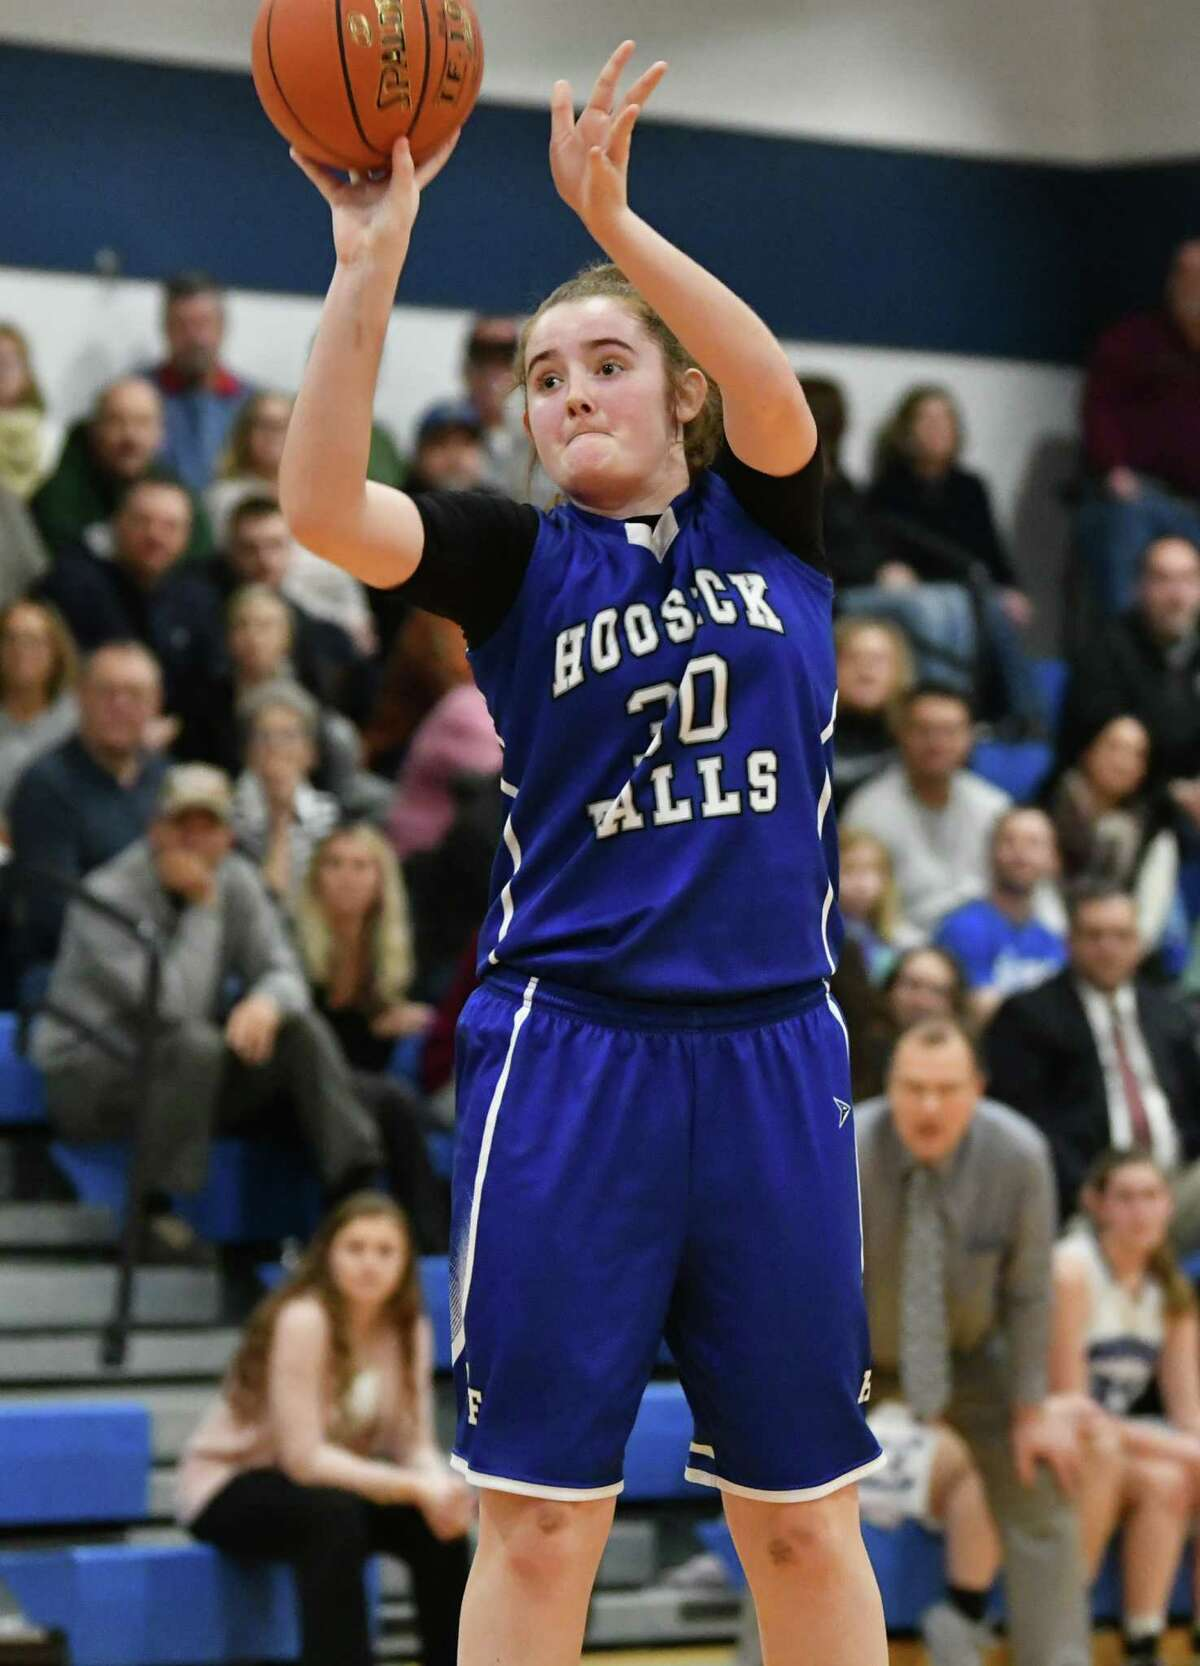 Hoosick Falls' Logan Thayne hits one from outside during a Class C girls' quarterfinal against Hoosic Valley on Wednesday, Feb. 20, 2019 in Schaghticoke, N.Y. (Lori Van Buren/Times Union)